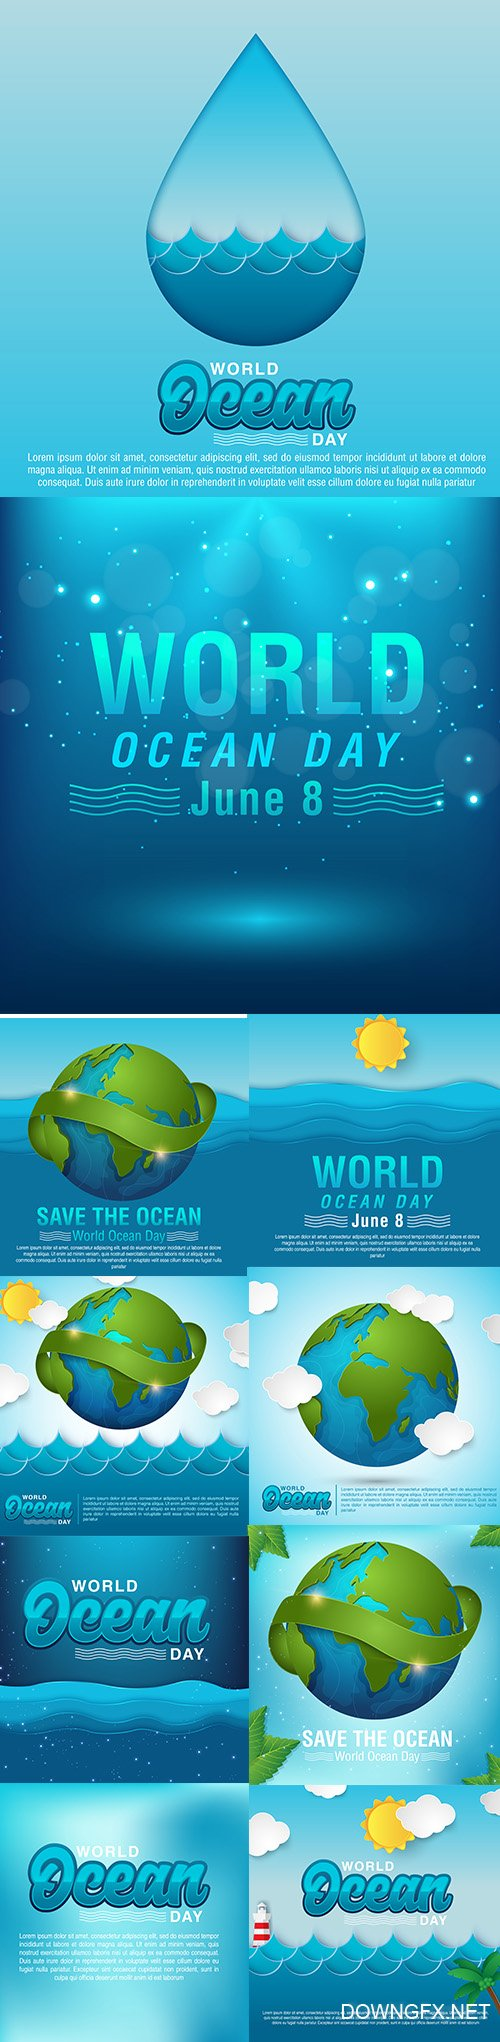 World Oceans Day Vector Illustrations